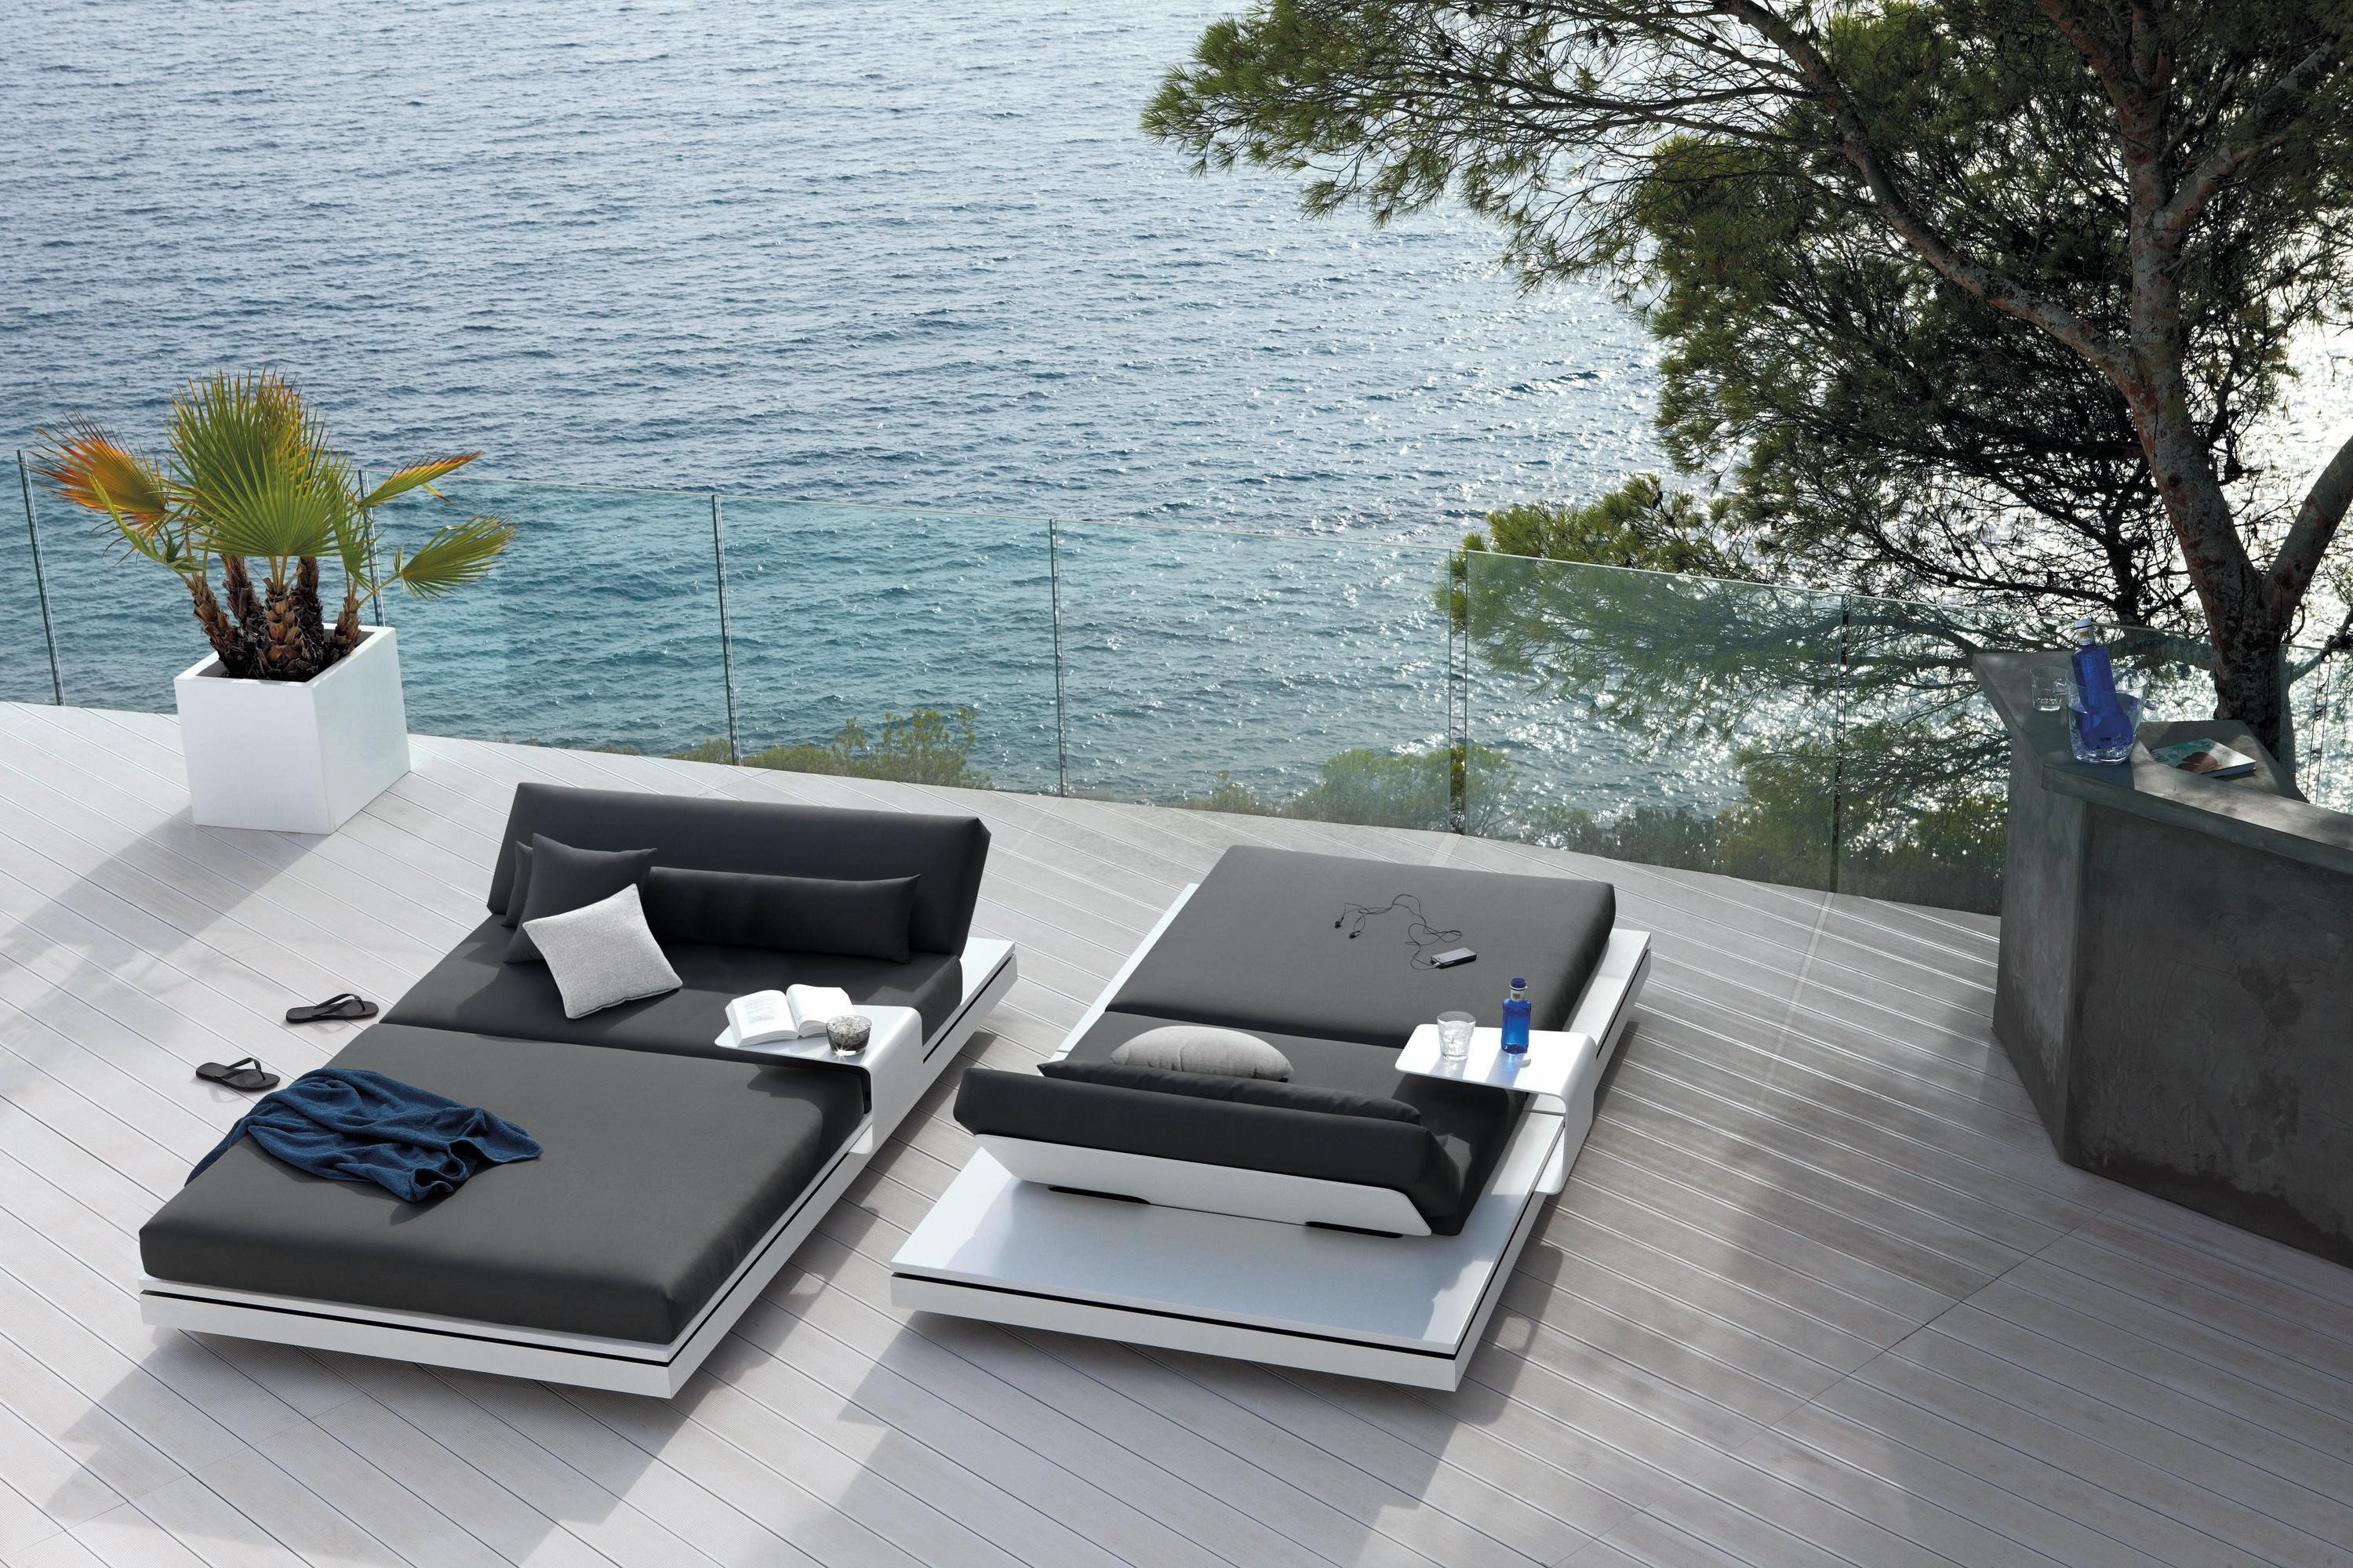 Elements Lounger  from Manutti, designed by Gerd Couckhuyt